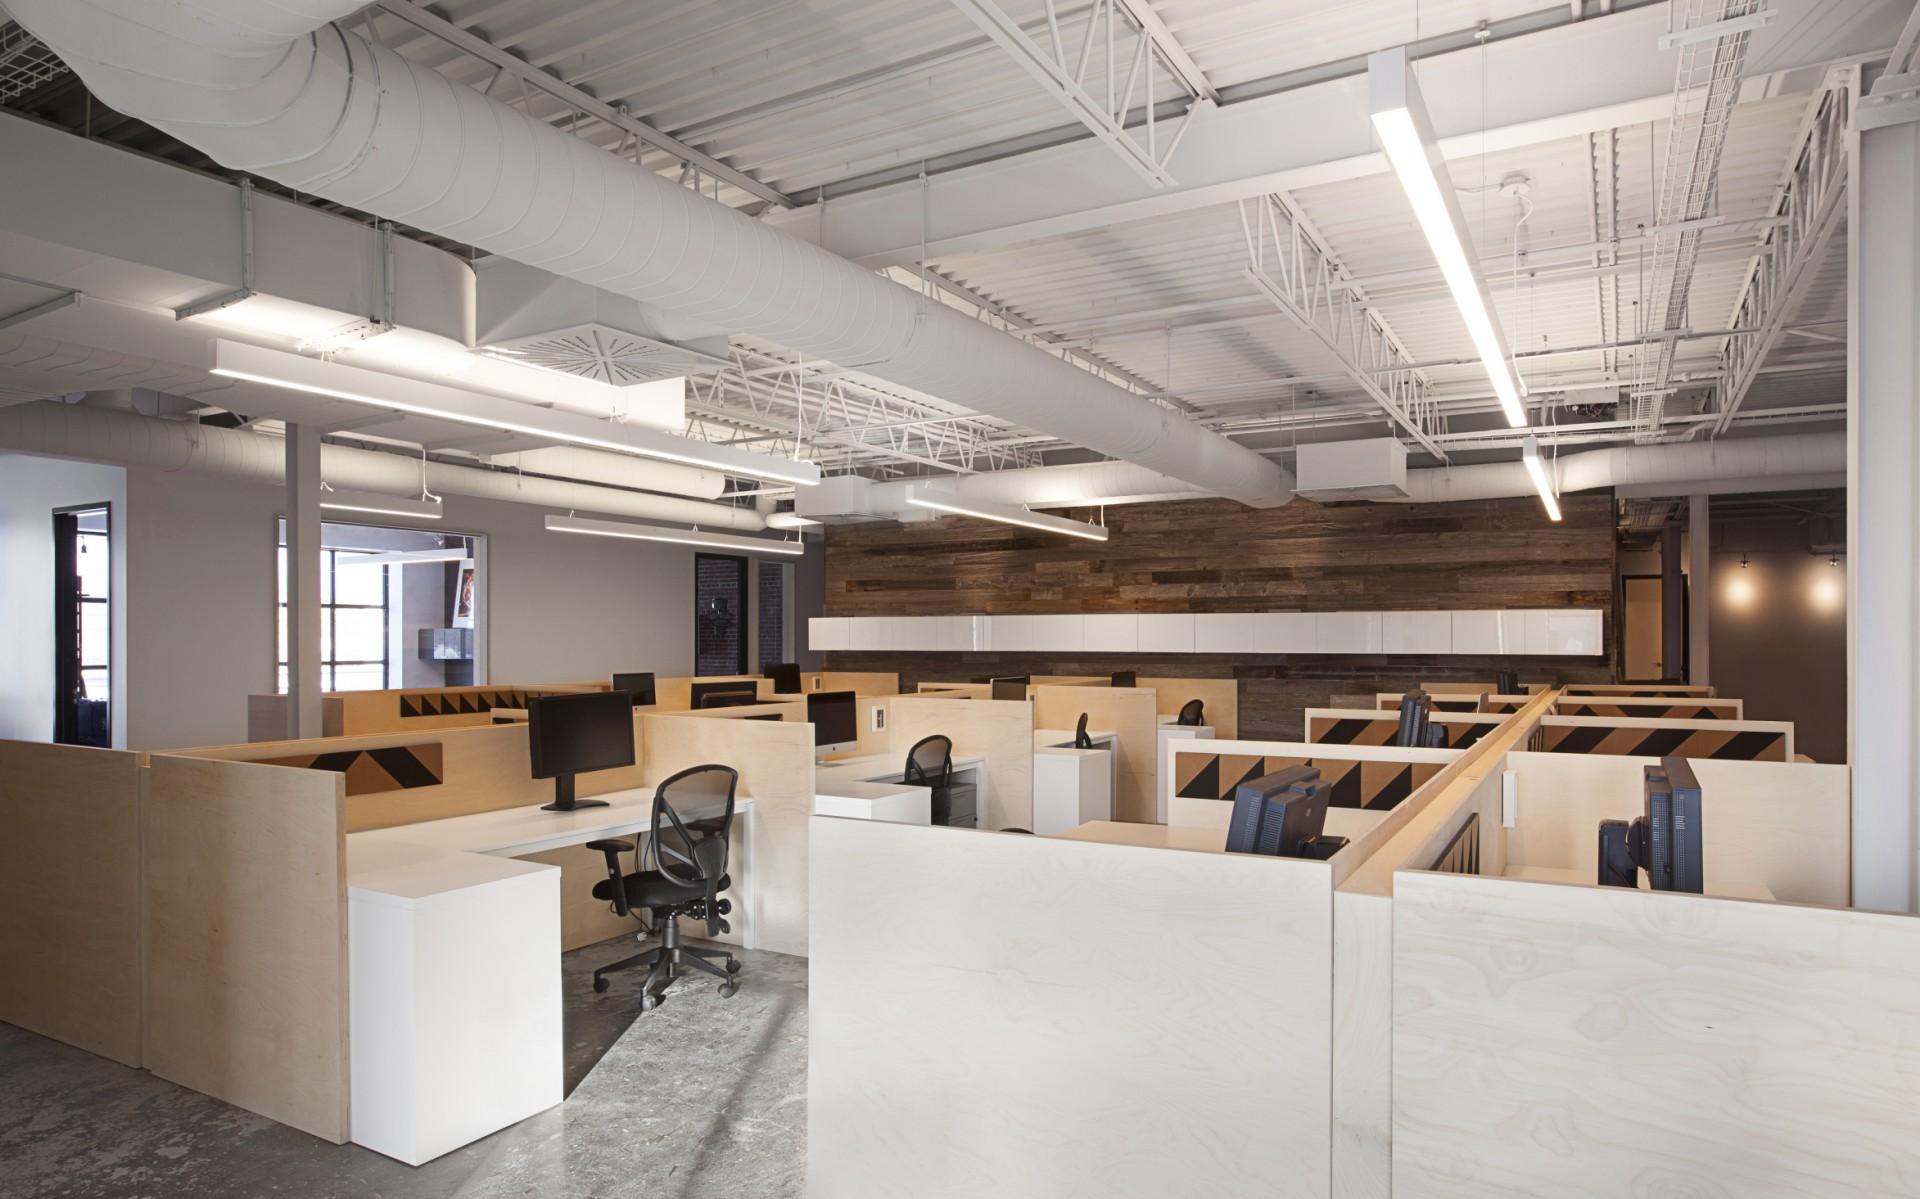 The Lumenline Pendant Direct luminaires allowed to deliver bright uniform light, which is perfect for the open spaces.